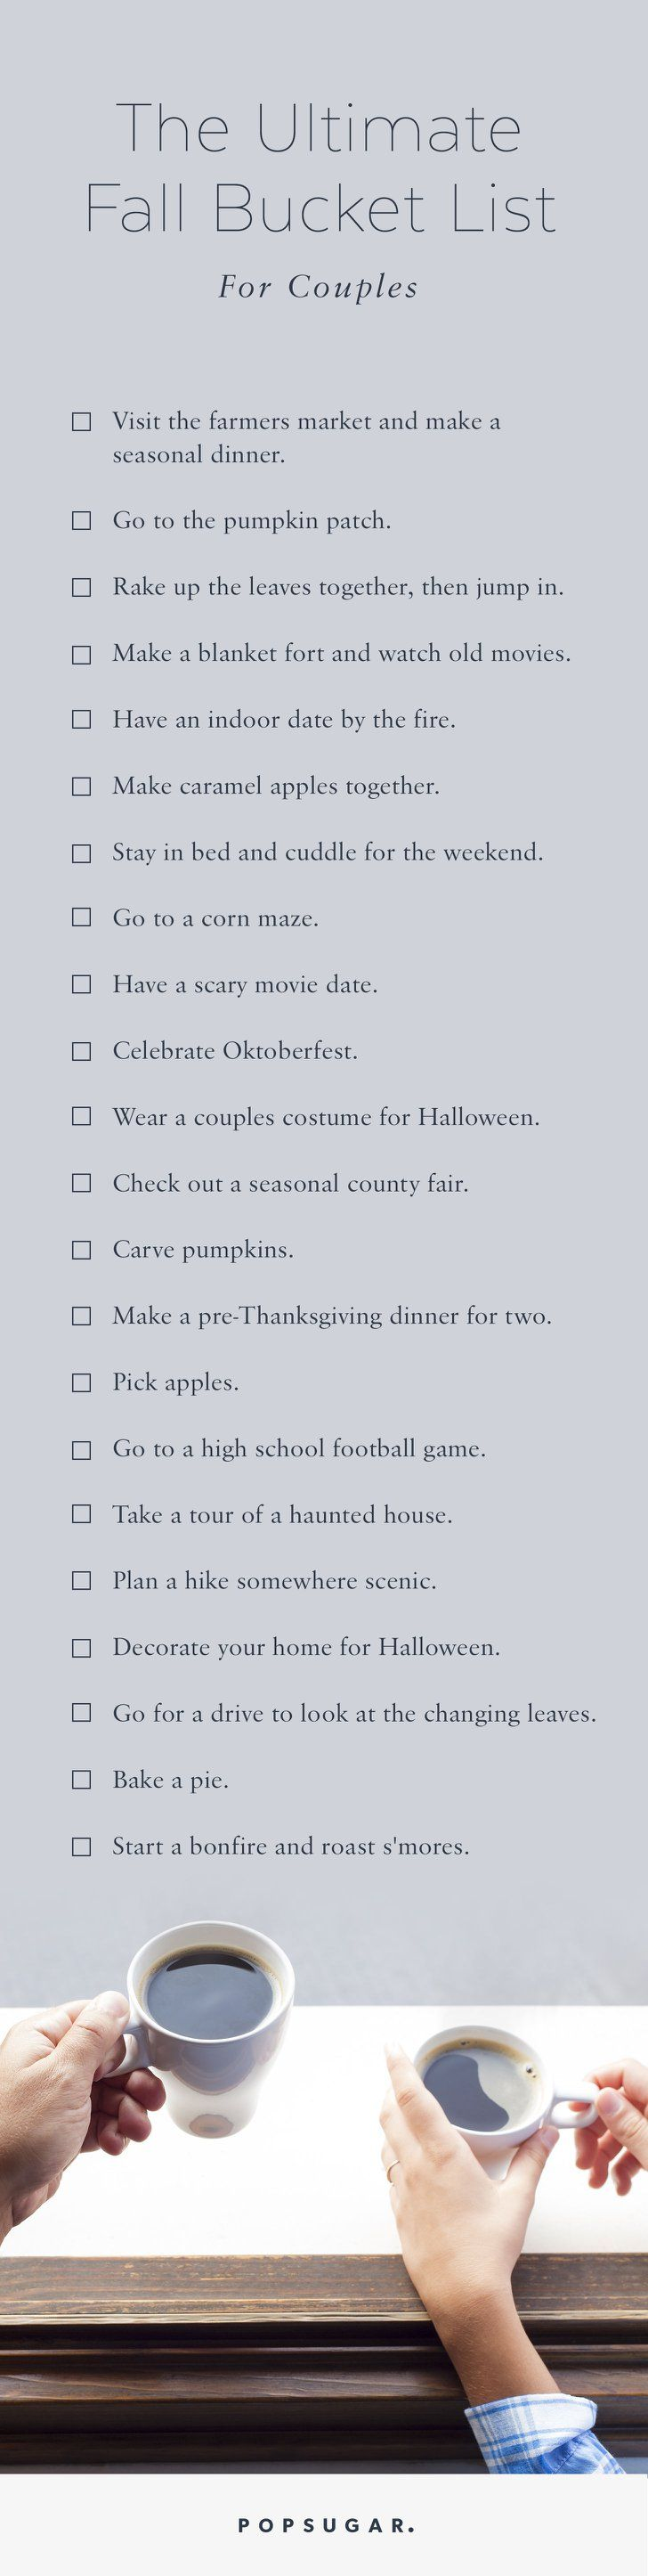 Pin for Later: The Ultimate Fall Couples Bucket List